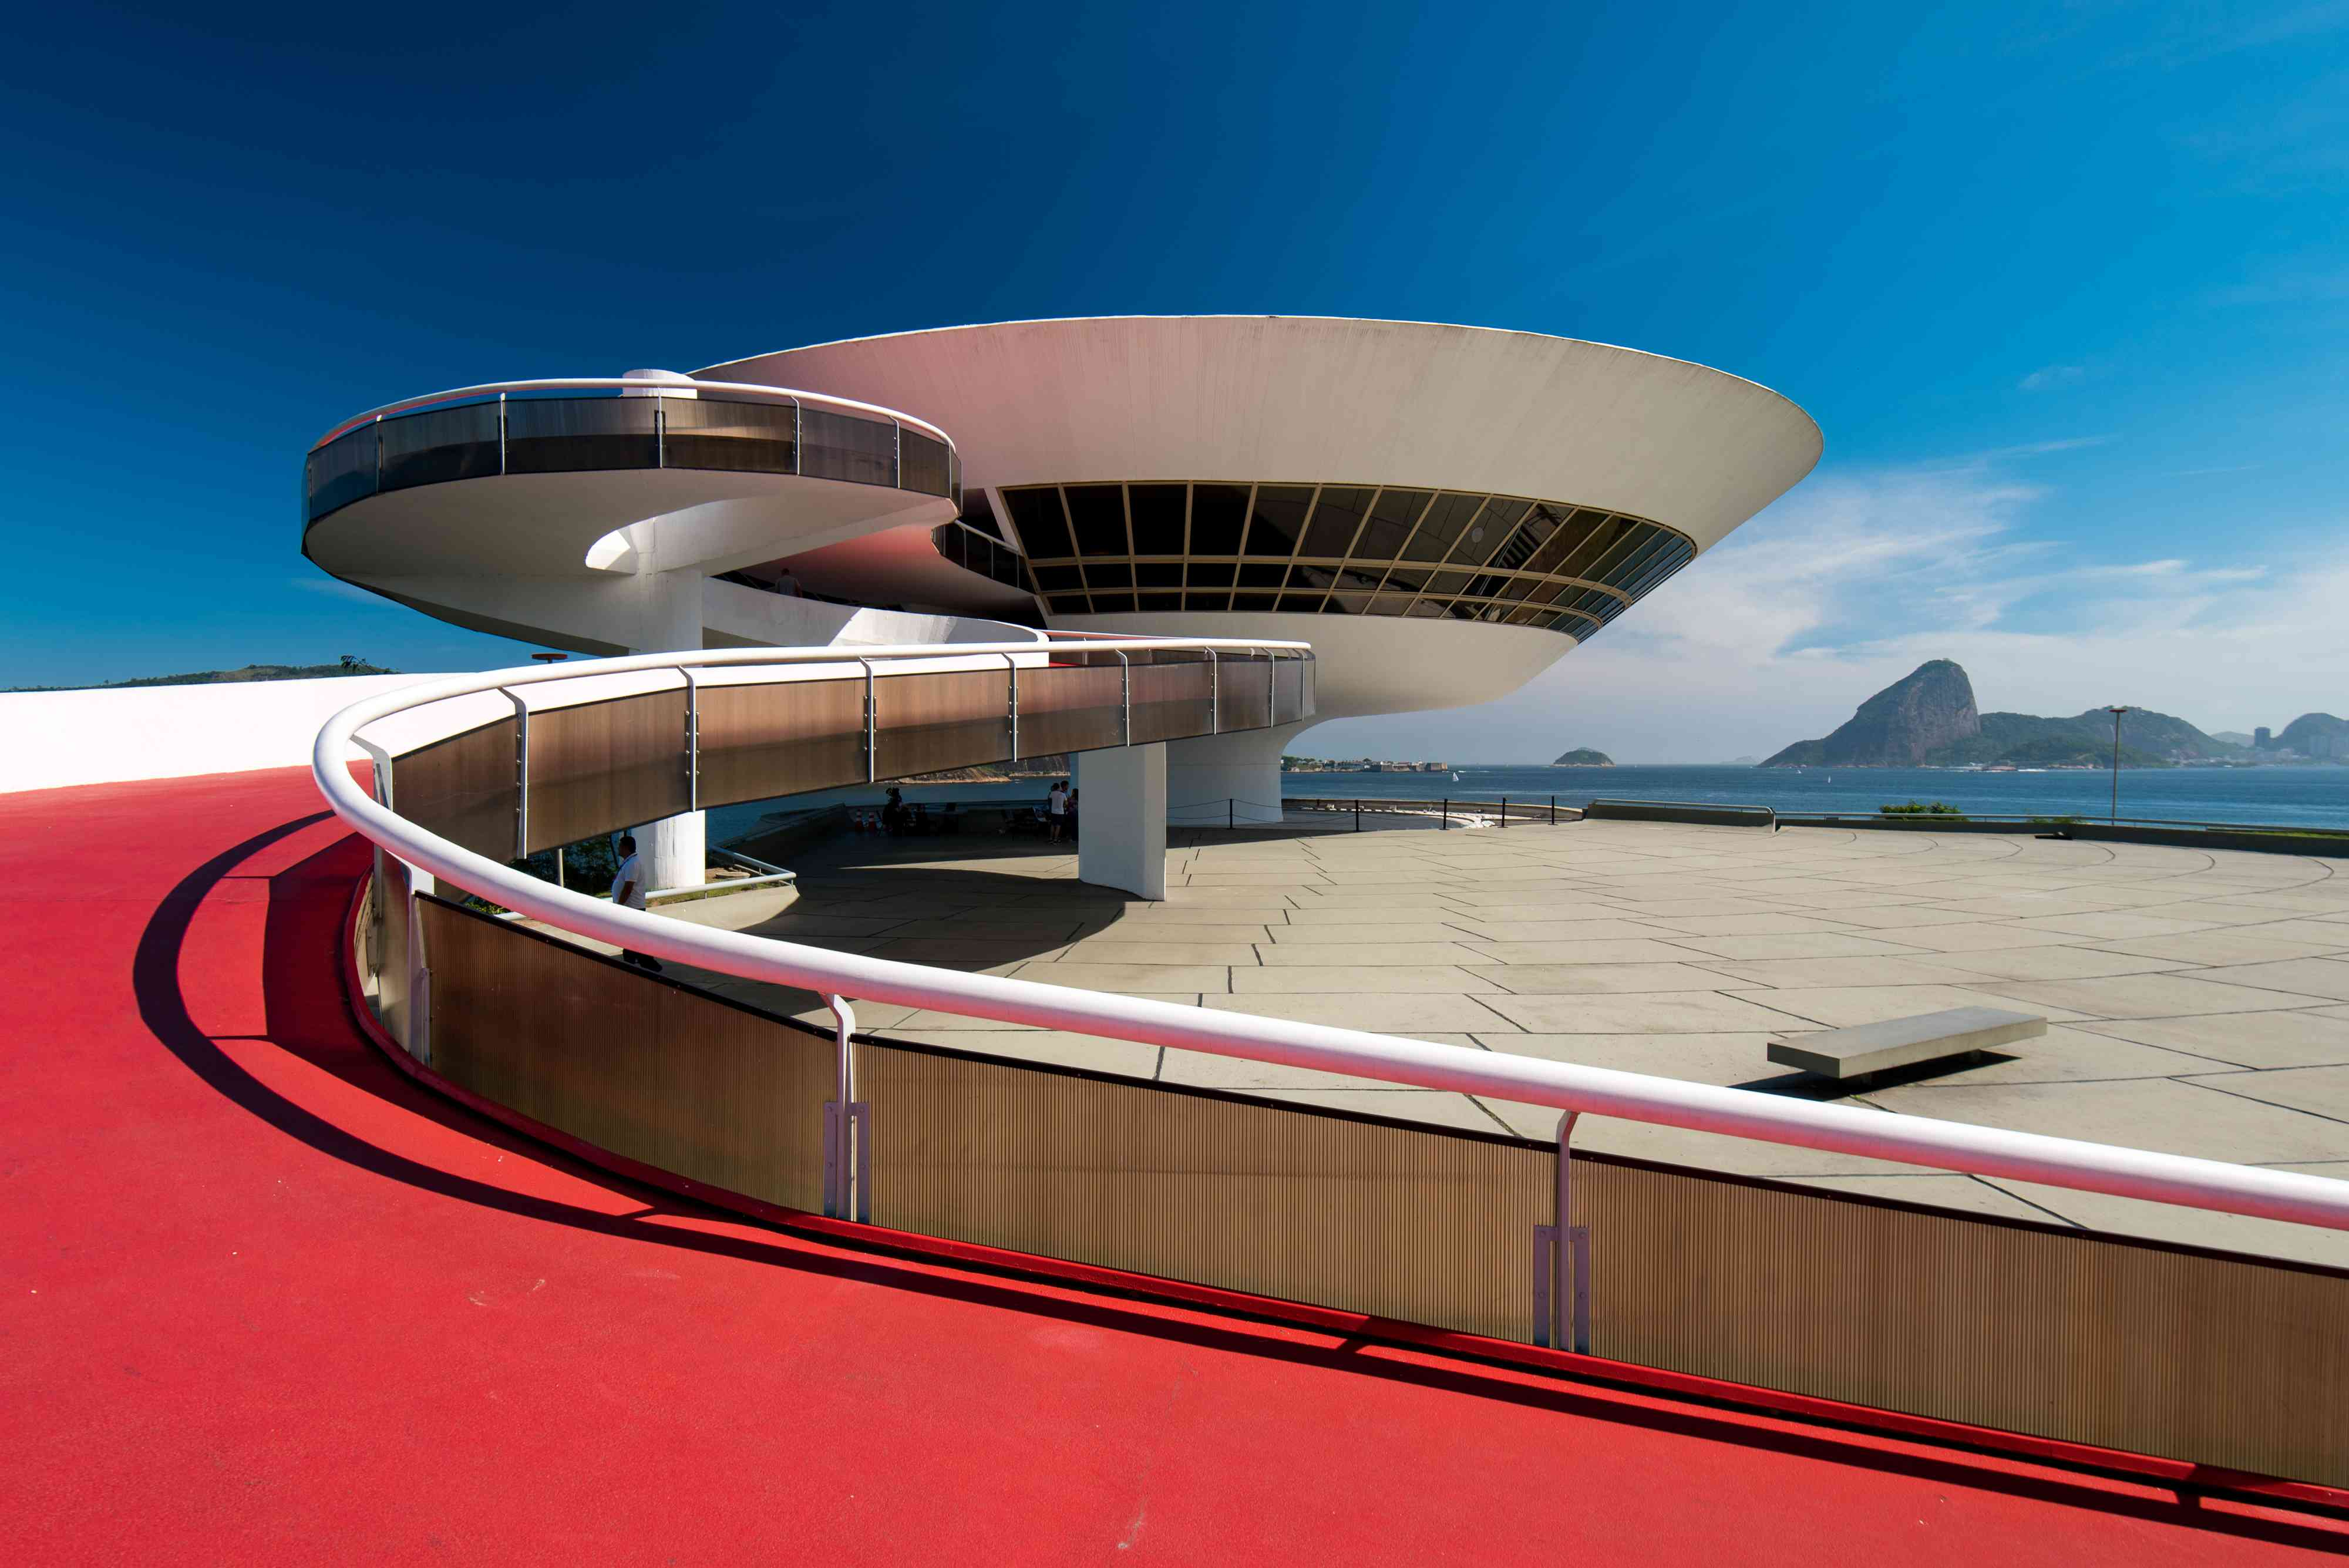 red, curved ramp leading to a white spaceship-like building, Oscar Niemeyer Contemporary Art Museum